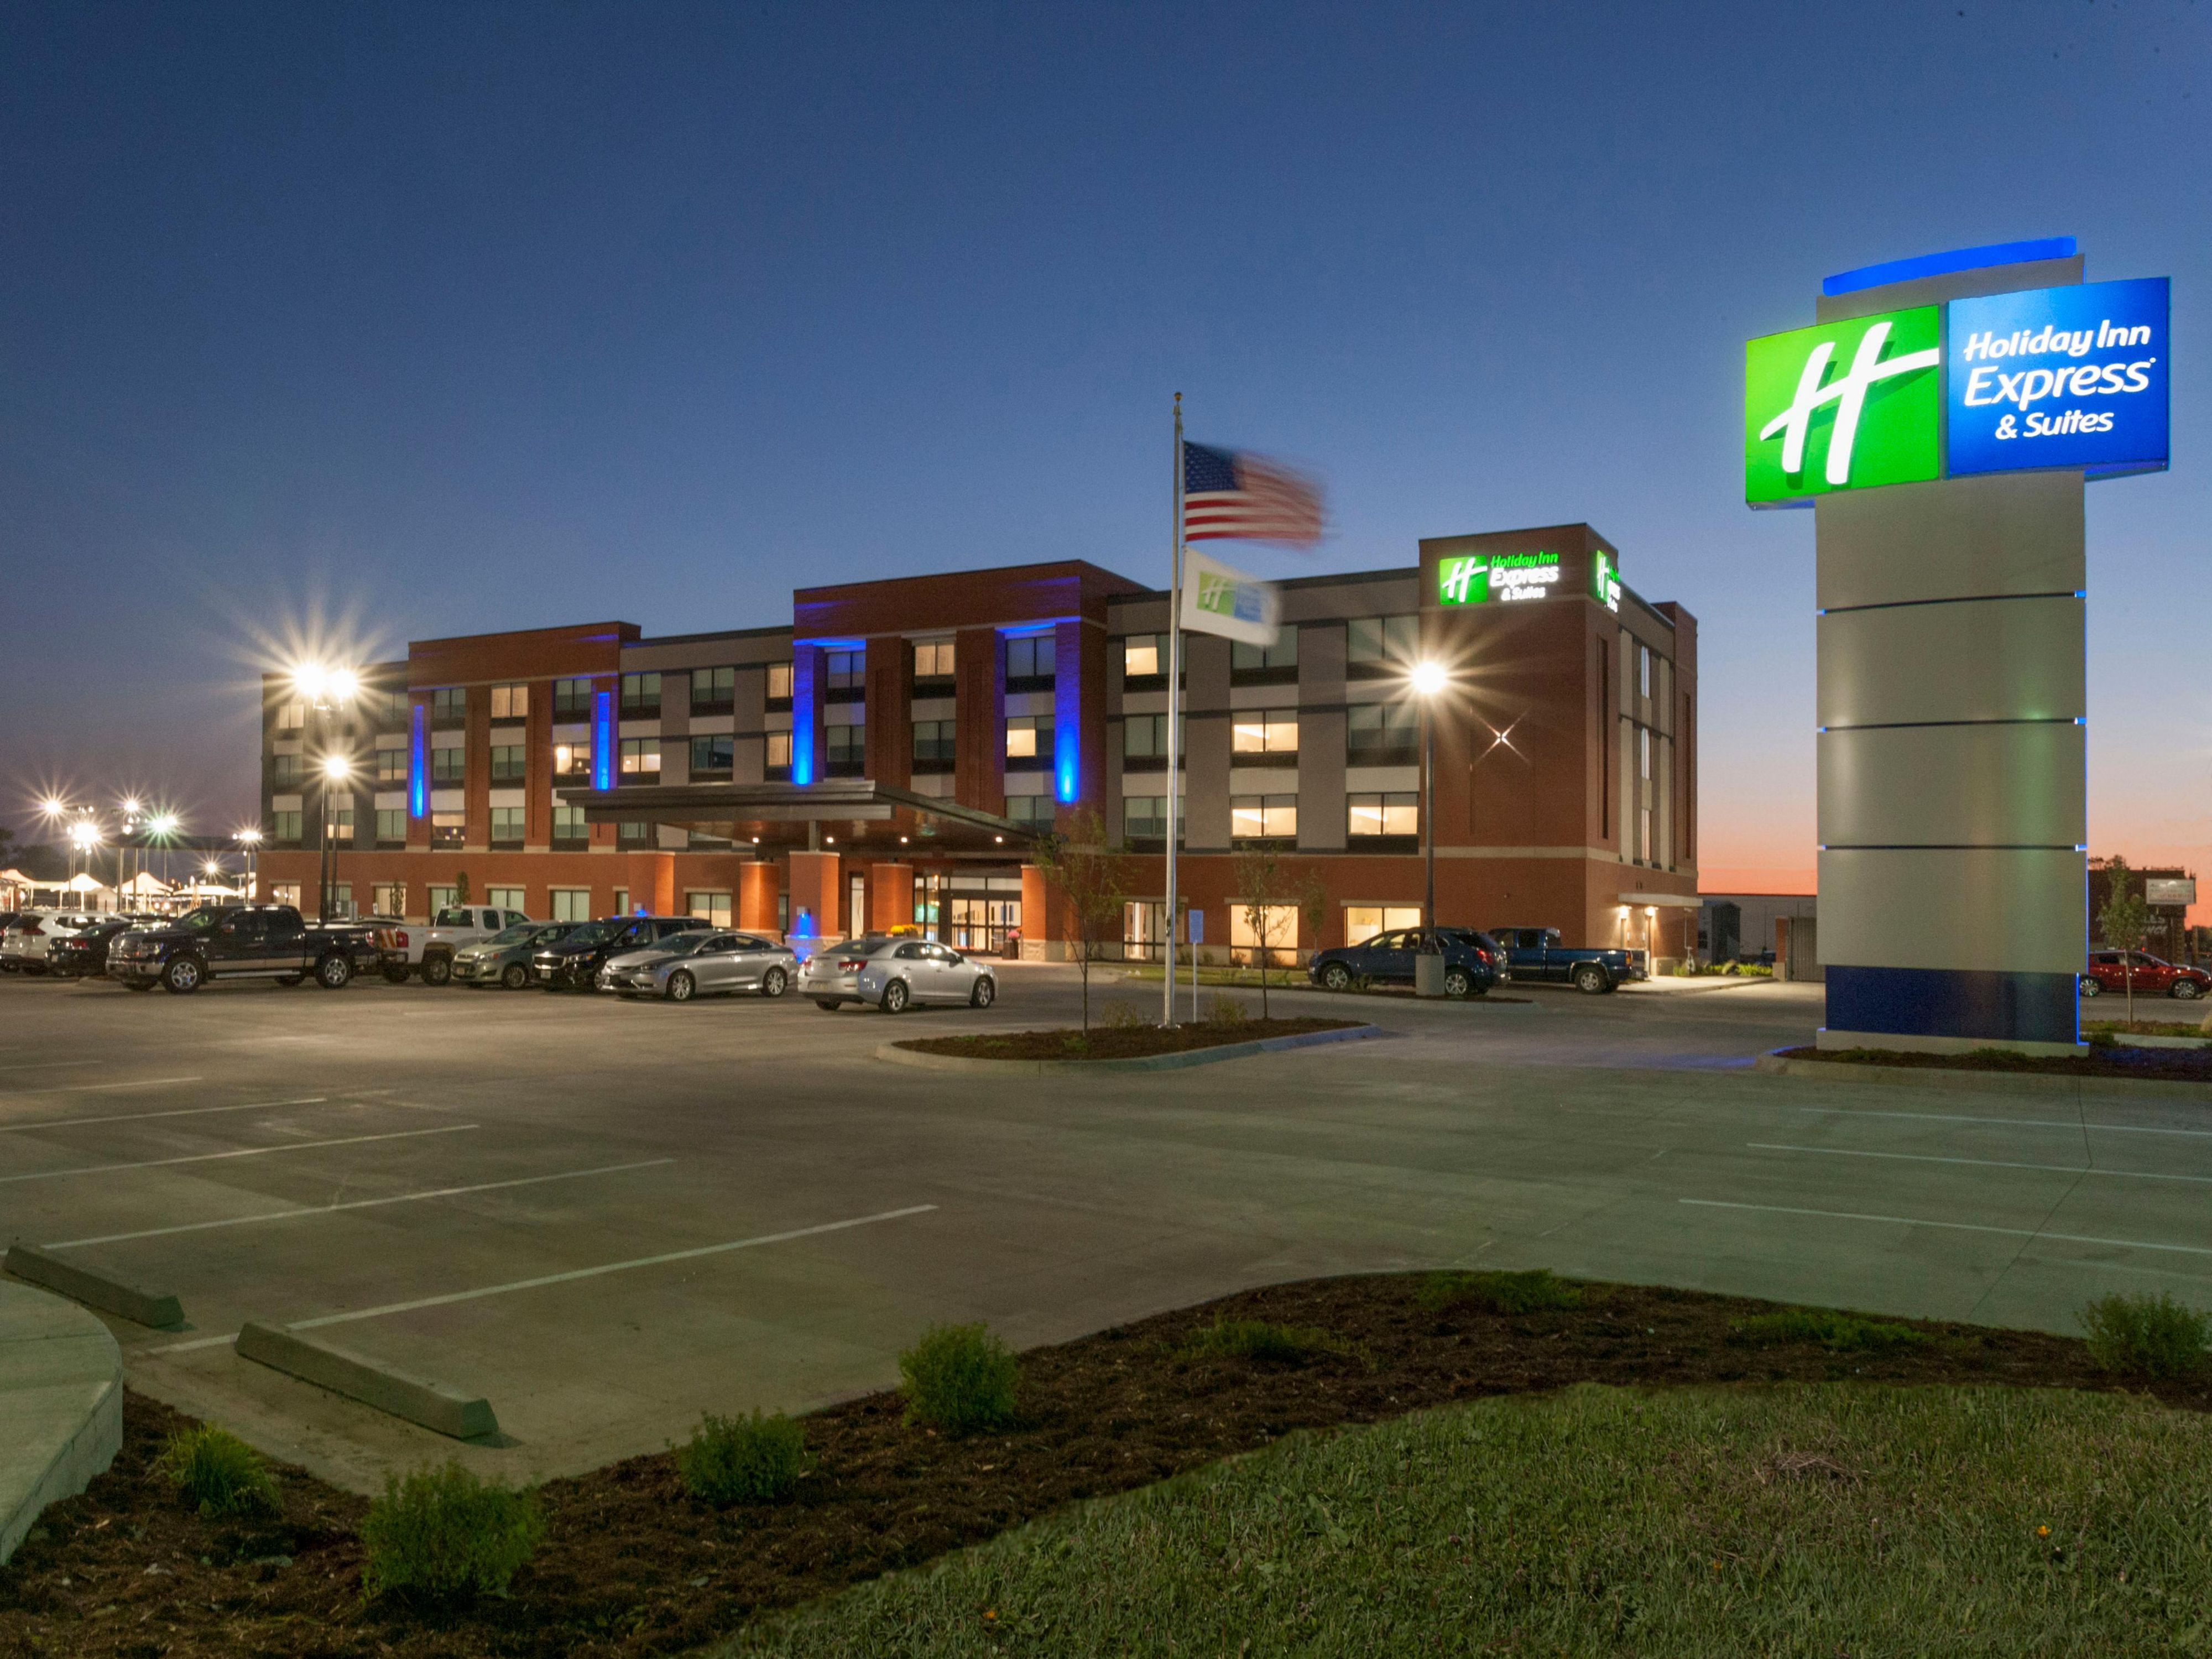 holiday inn express & suites dodge city west ihg hotel